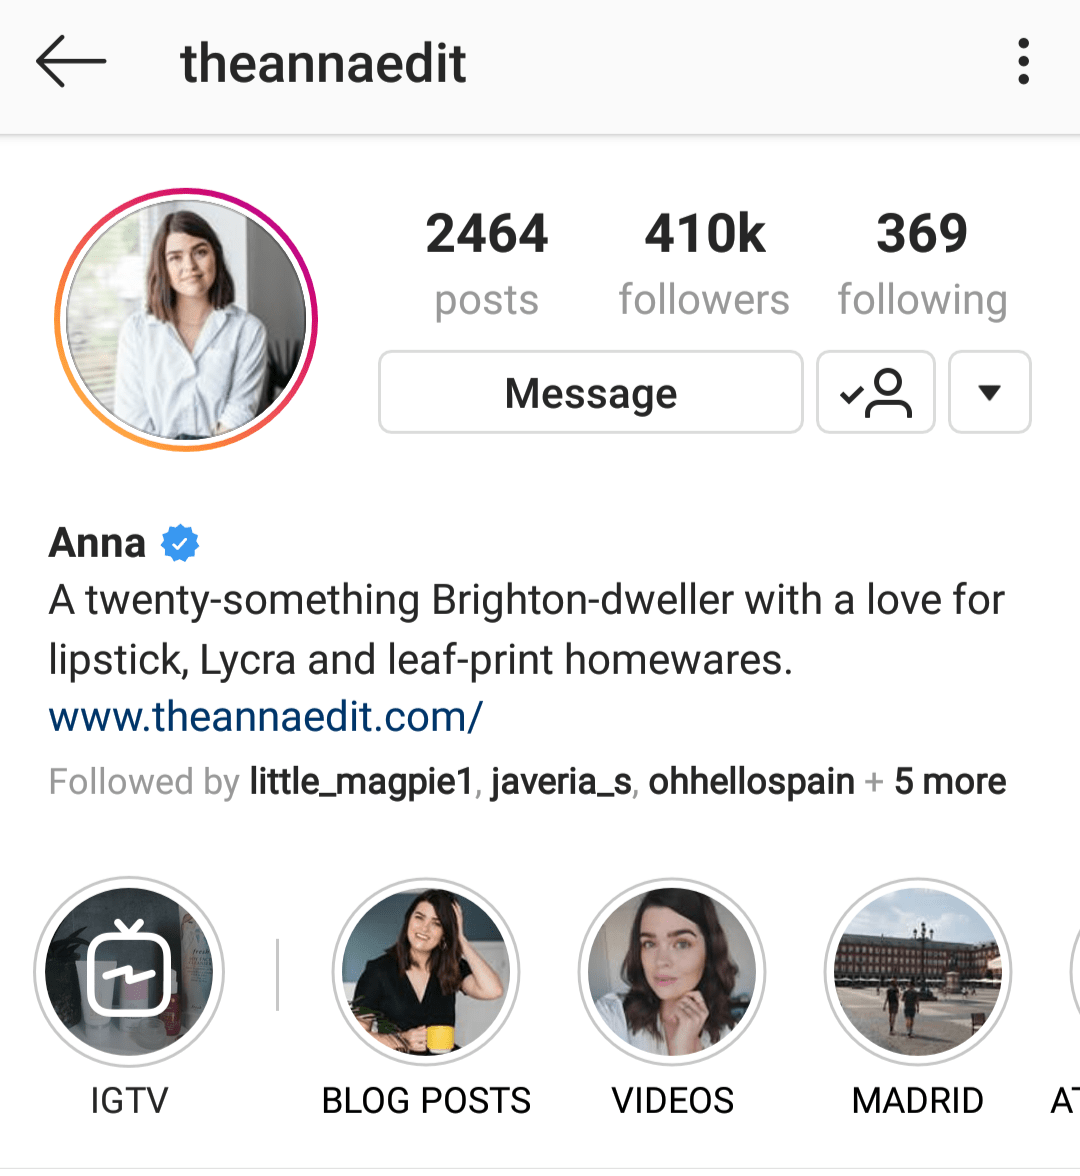 6 Instagram Bio Ideas To Attract Your Ideal Followers